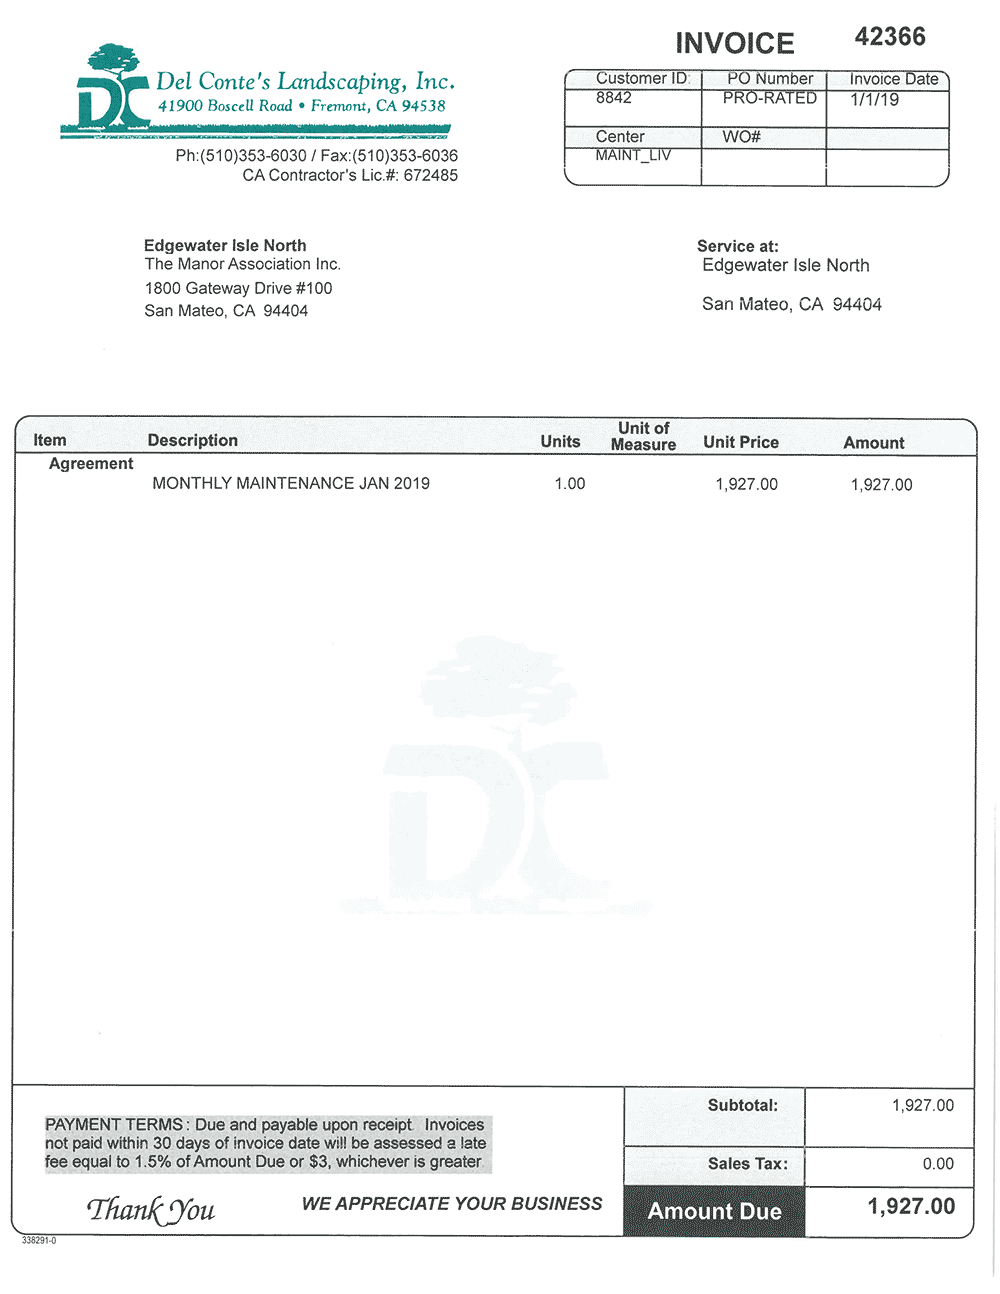 Del Conte's Landscaping has alleged that Edgewater Isle has not paid this invoice